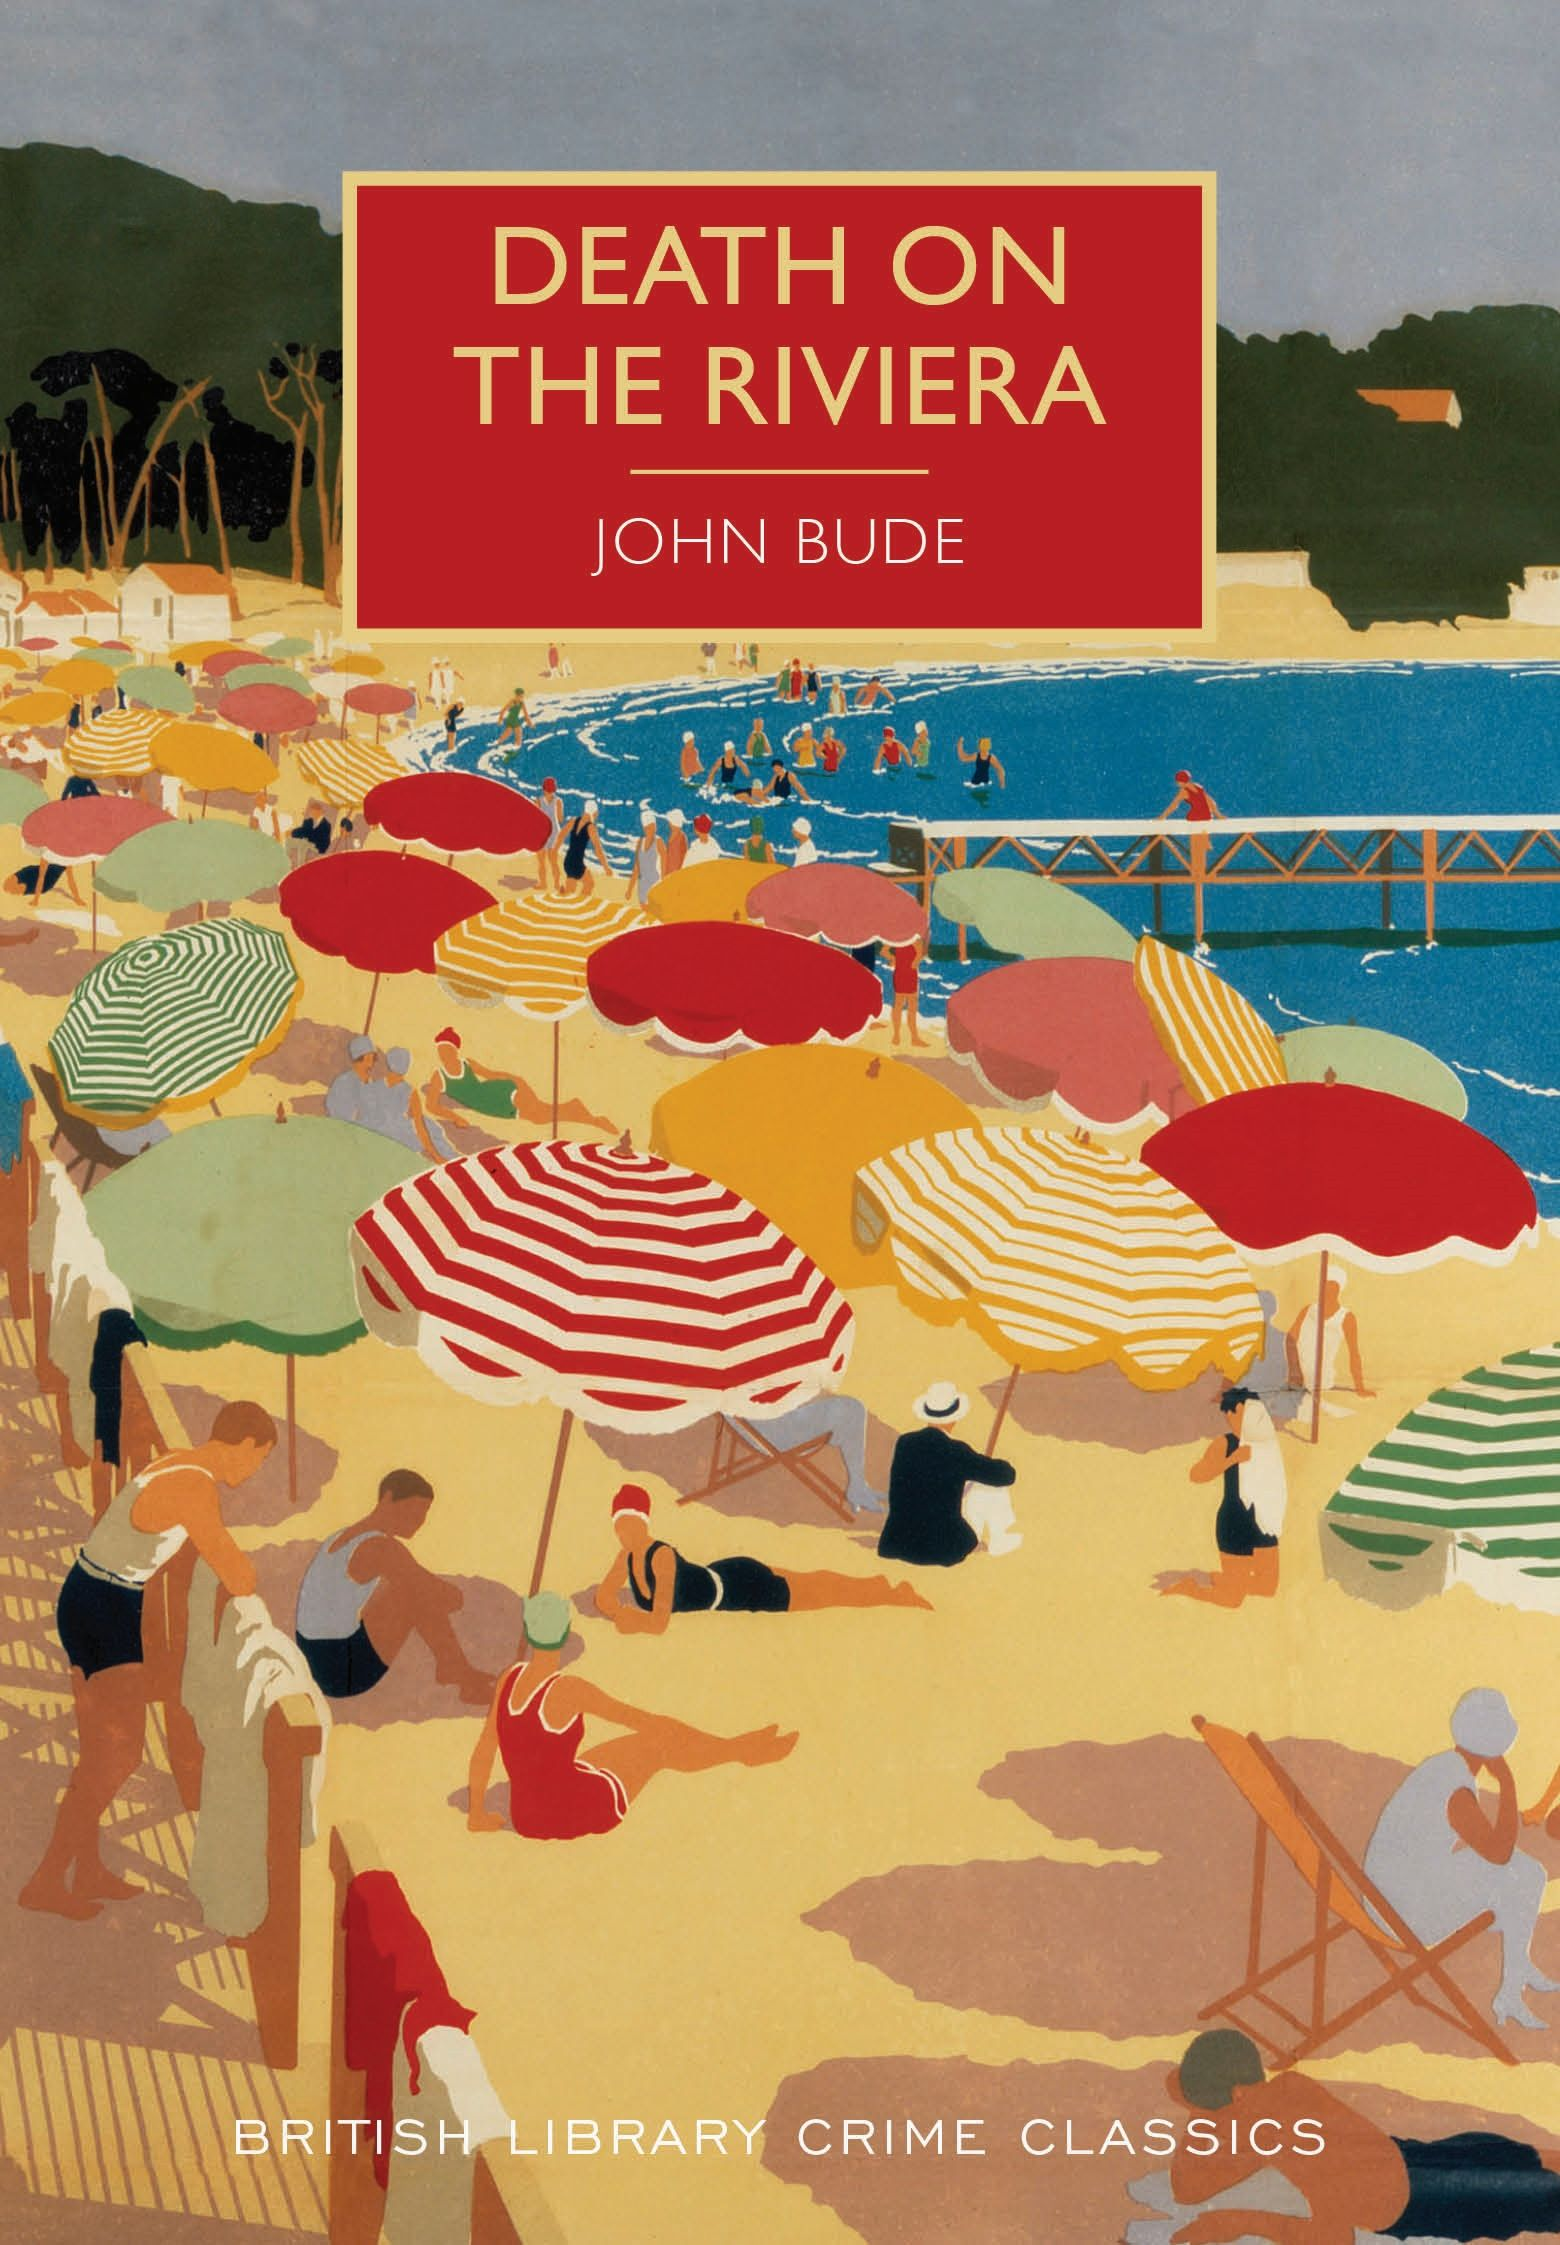 DEATH ON THE RIVERIA BY JOHN BUDE | Death On The Riviera by John Bude – In Search of the Classic Mystery ...